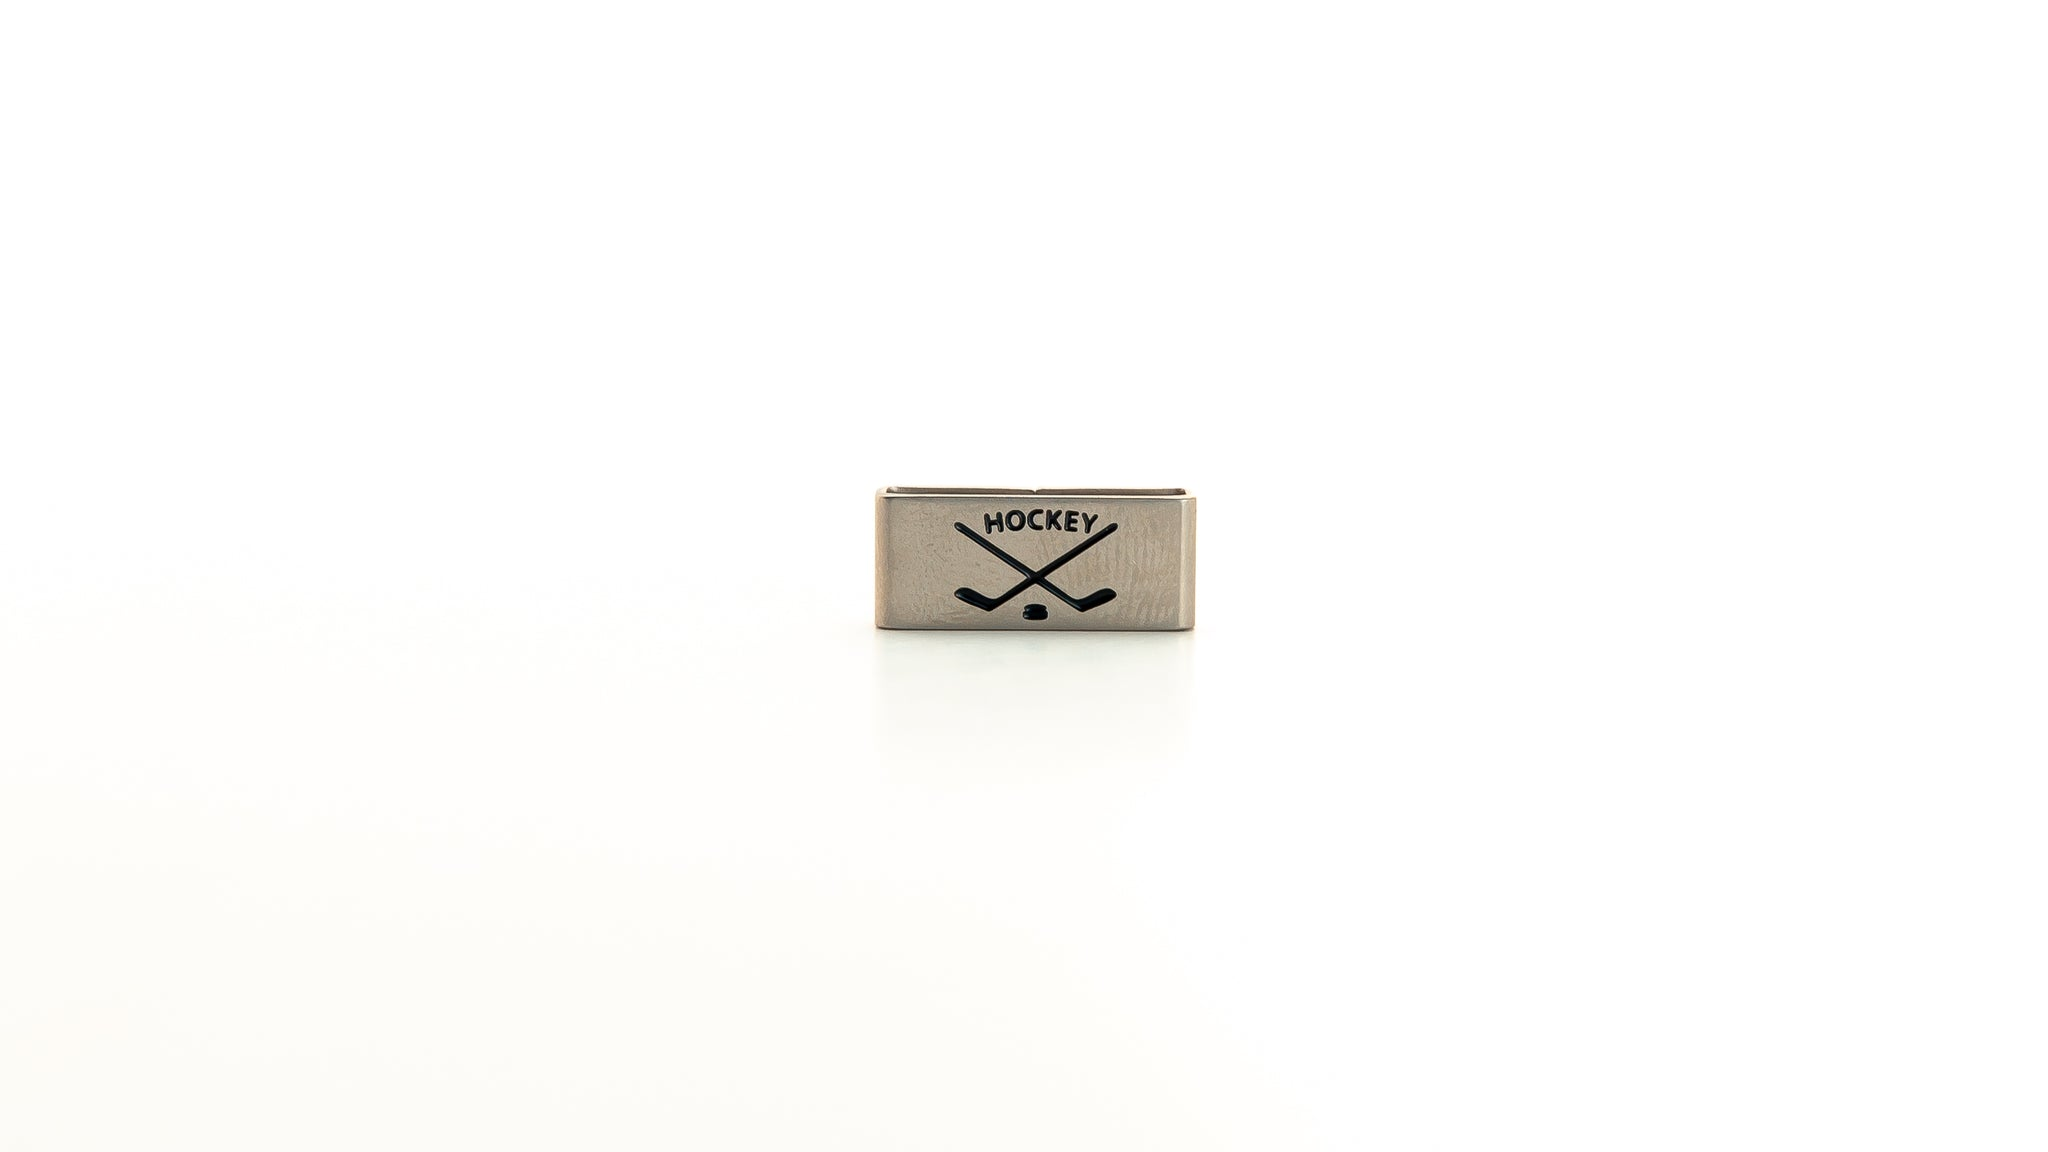 Hockey charm stainless steel tag. Radtagz collectible charms. Mens steel jewelry. Mens charms